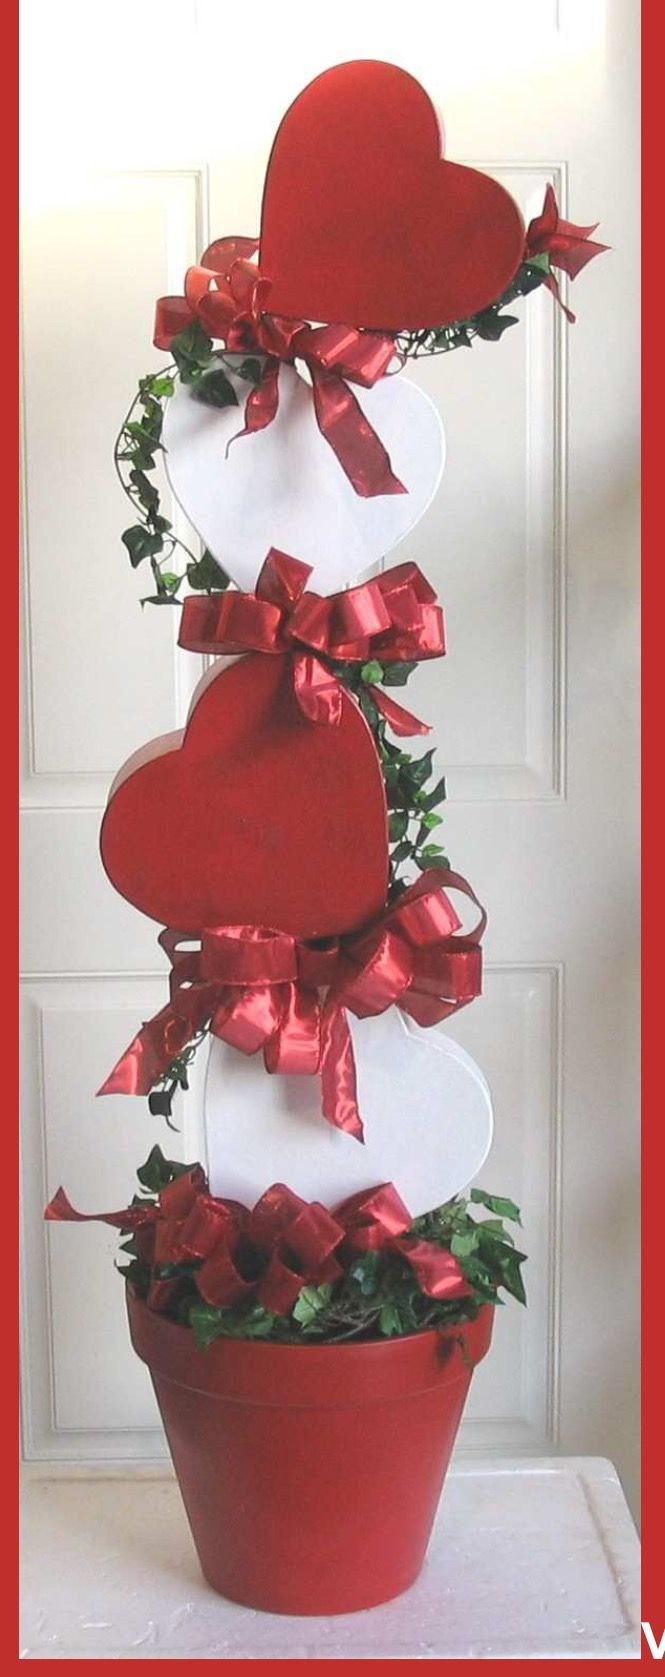 Pin By Lori Brown On Valentine S Day Pinterest Hanger Craft And